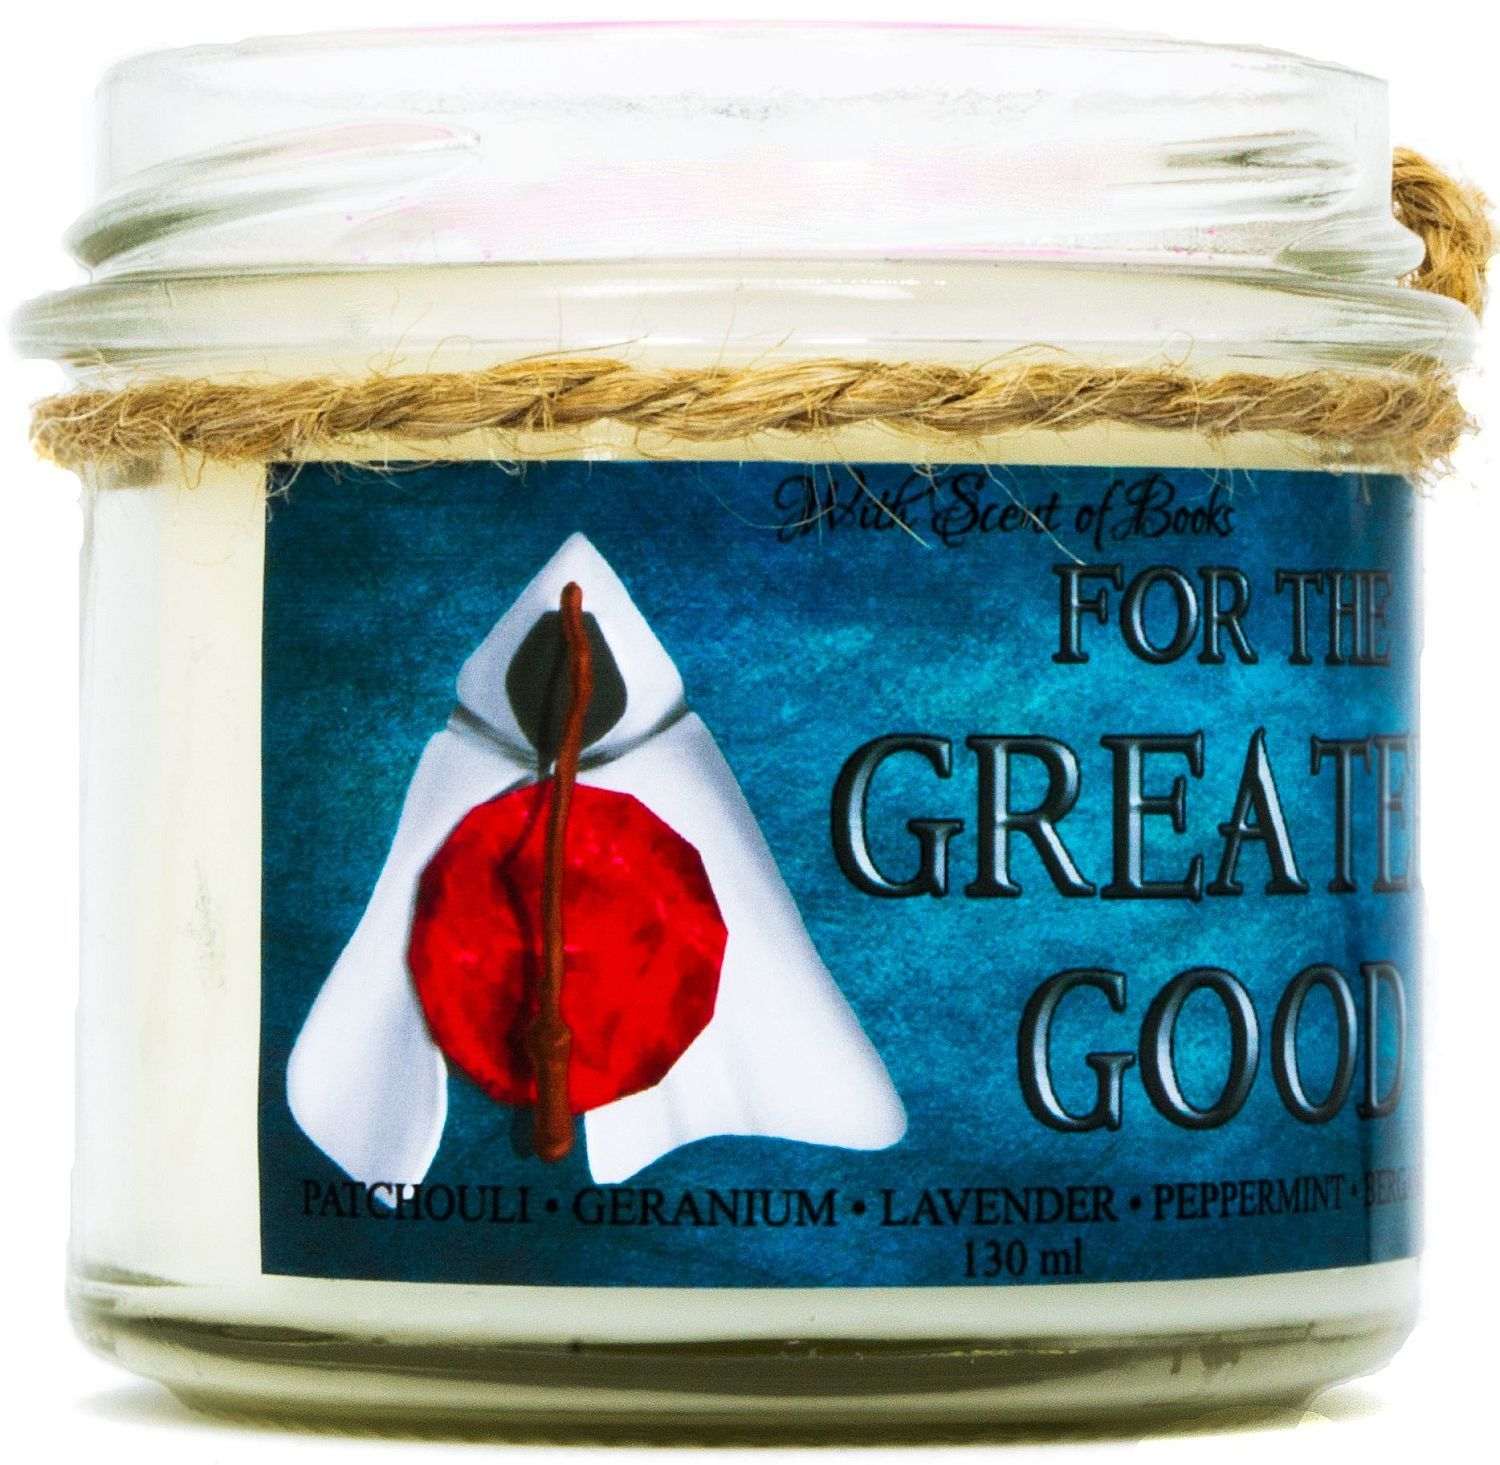 Ароматна свещ - For the Greater Good, 130 ml - 2